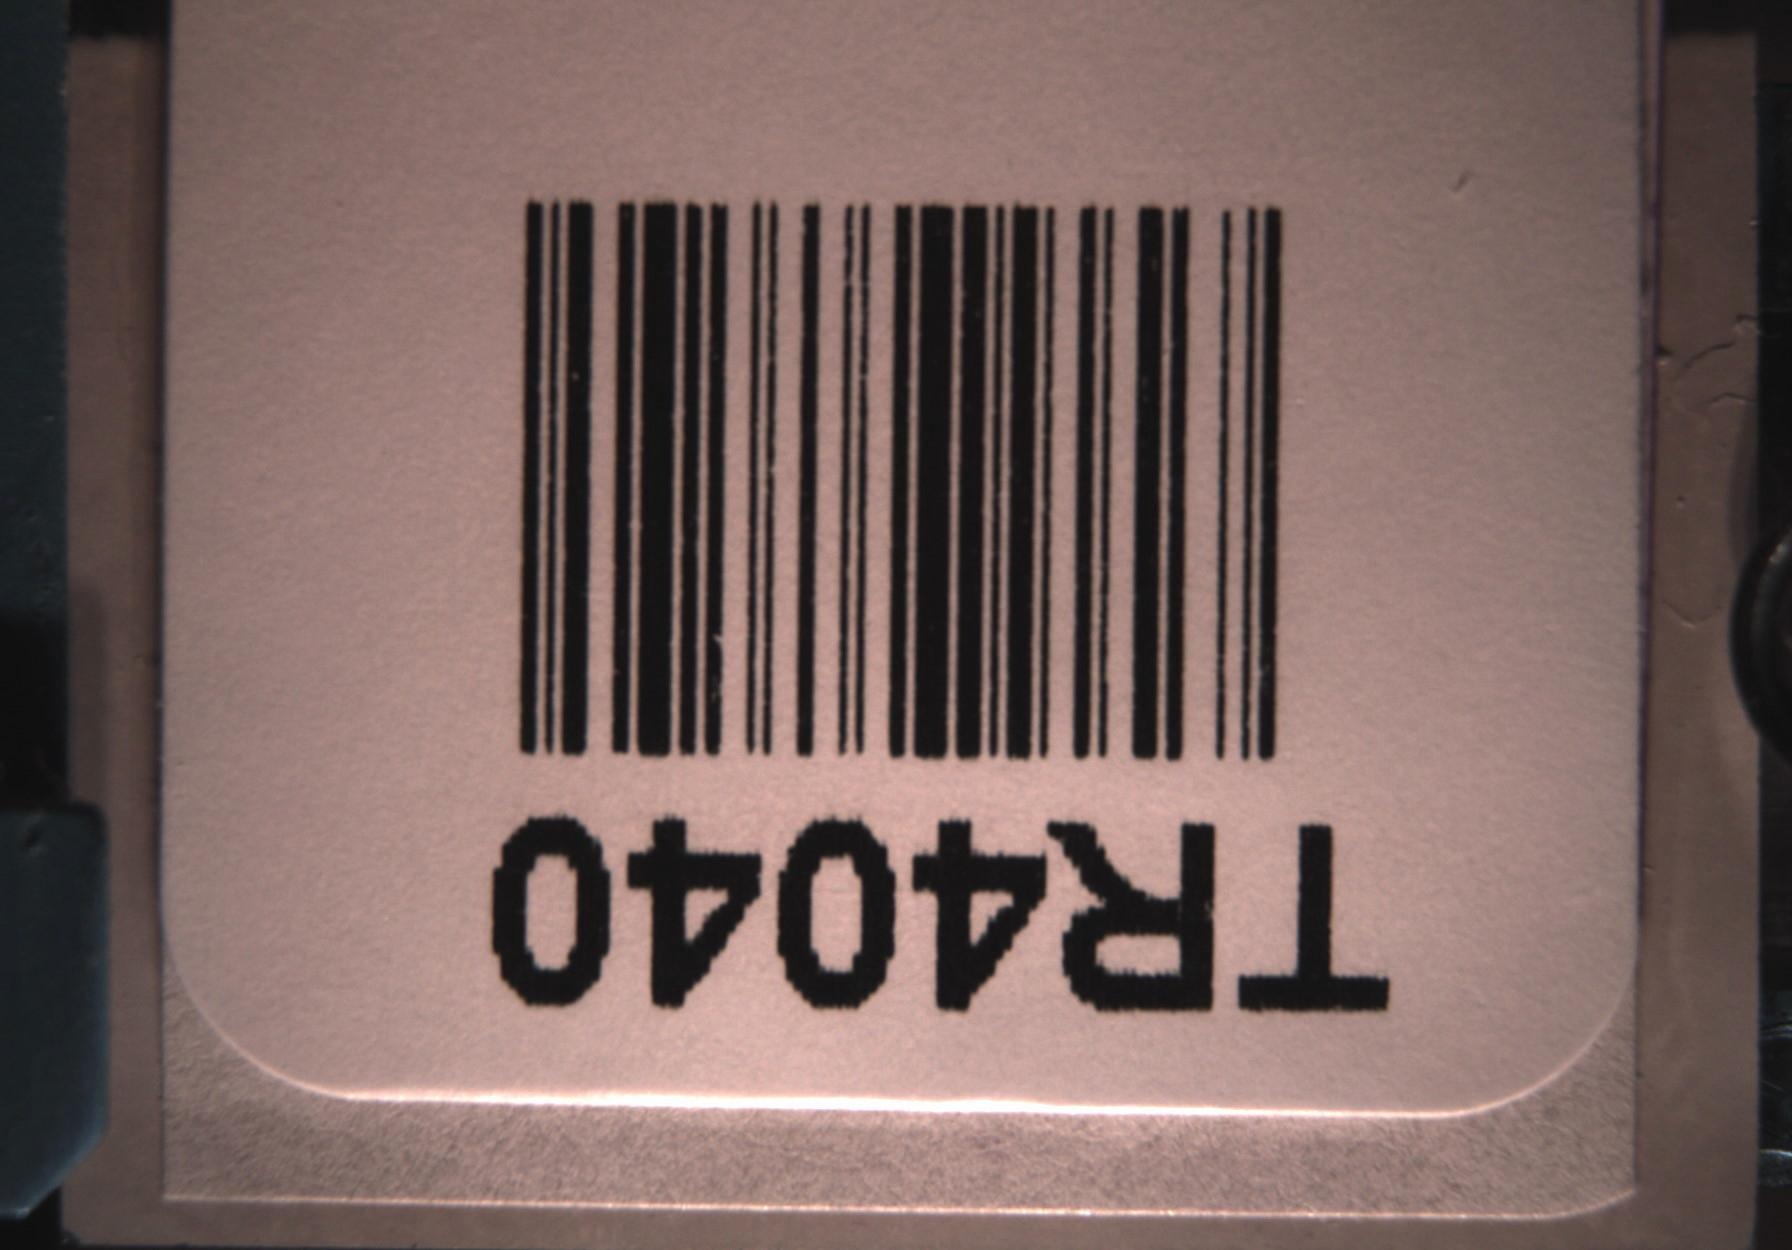 Extracting bar code label and overview image from MRXS slide